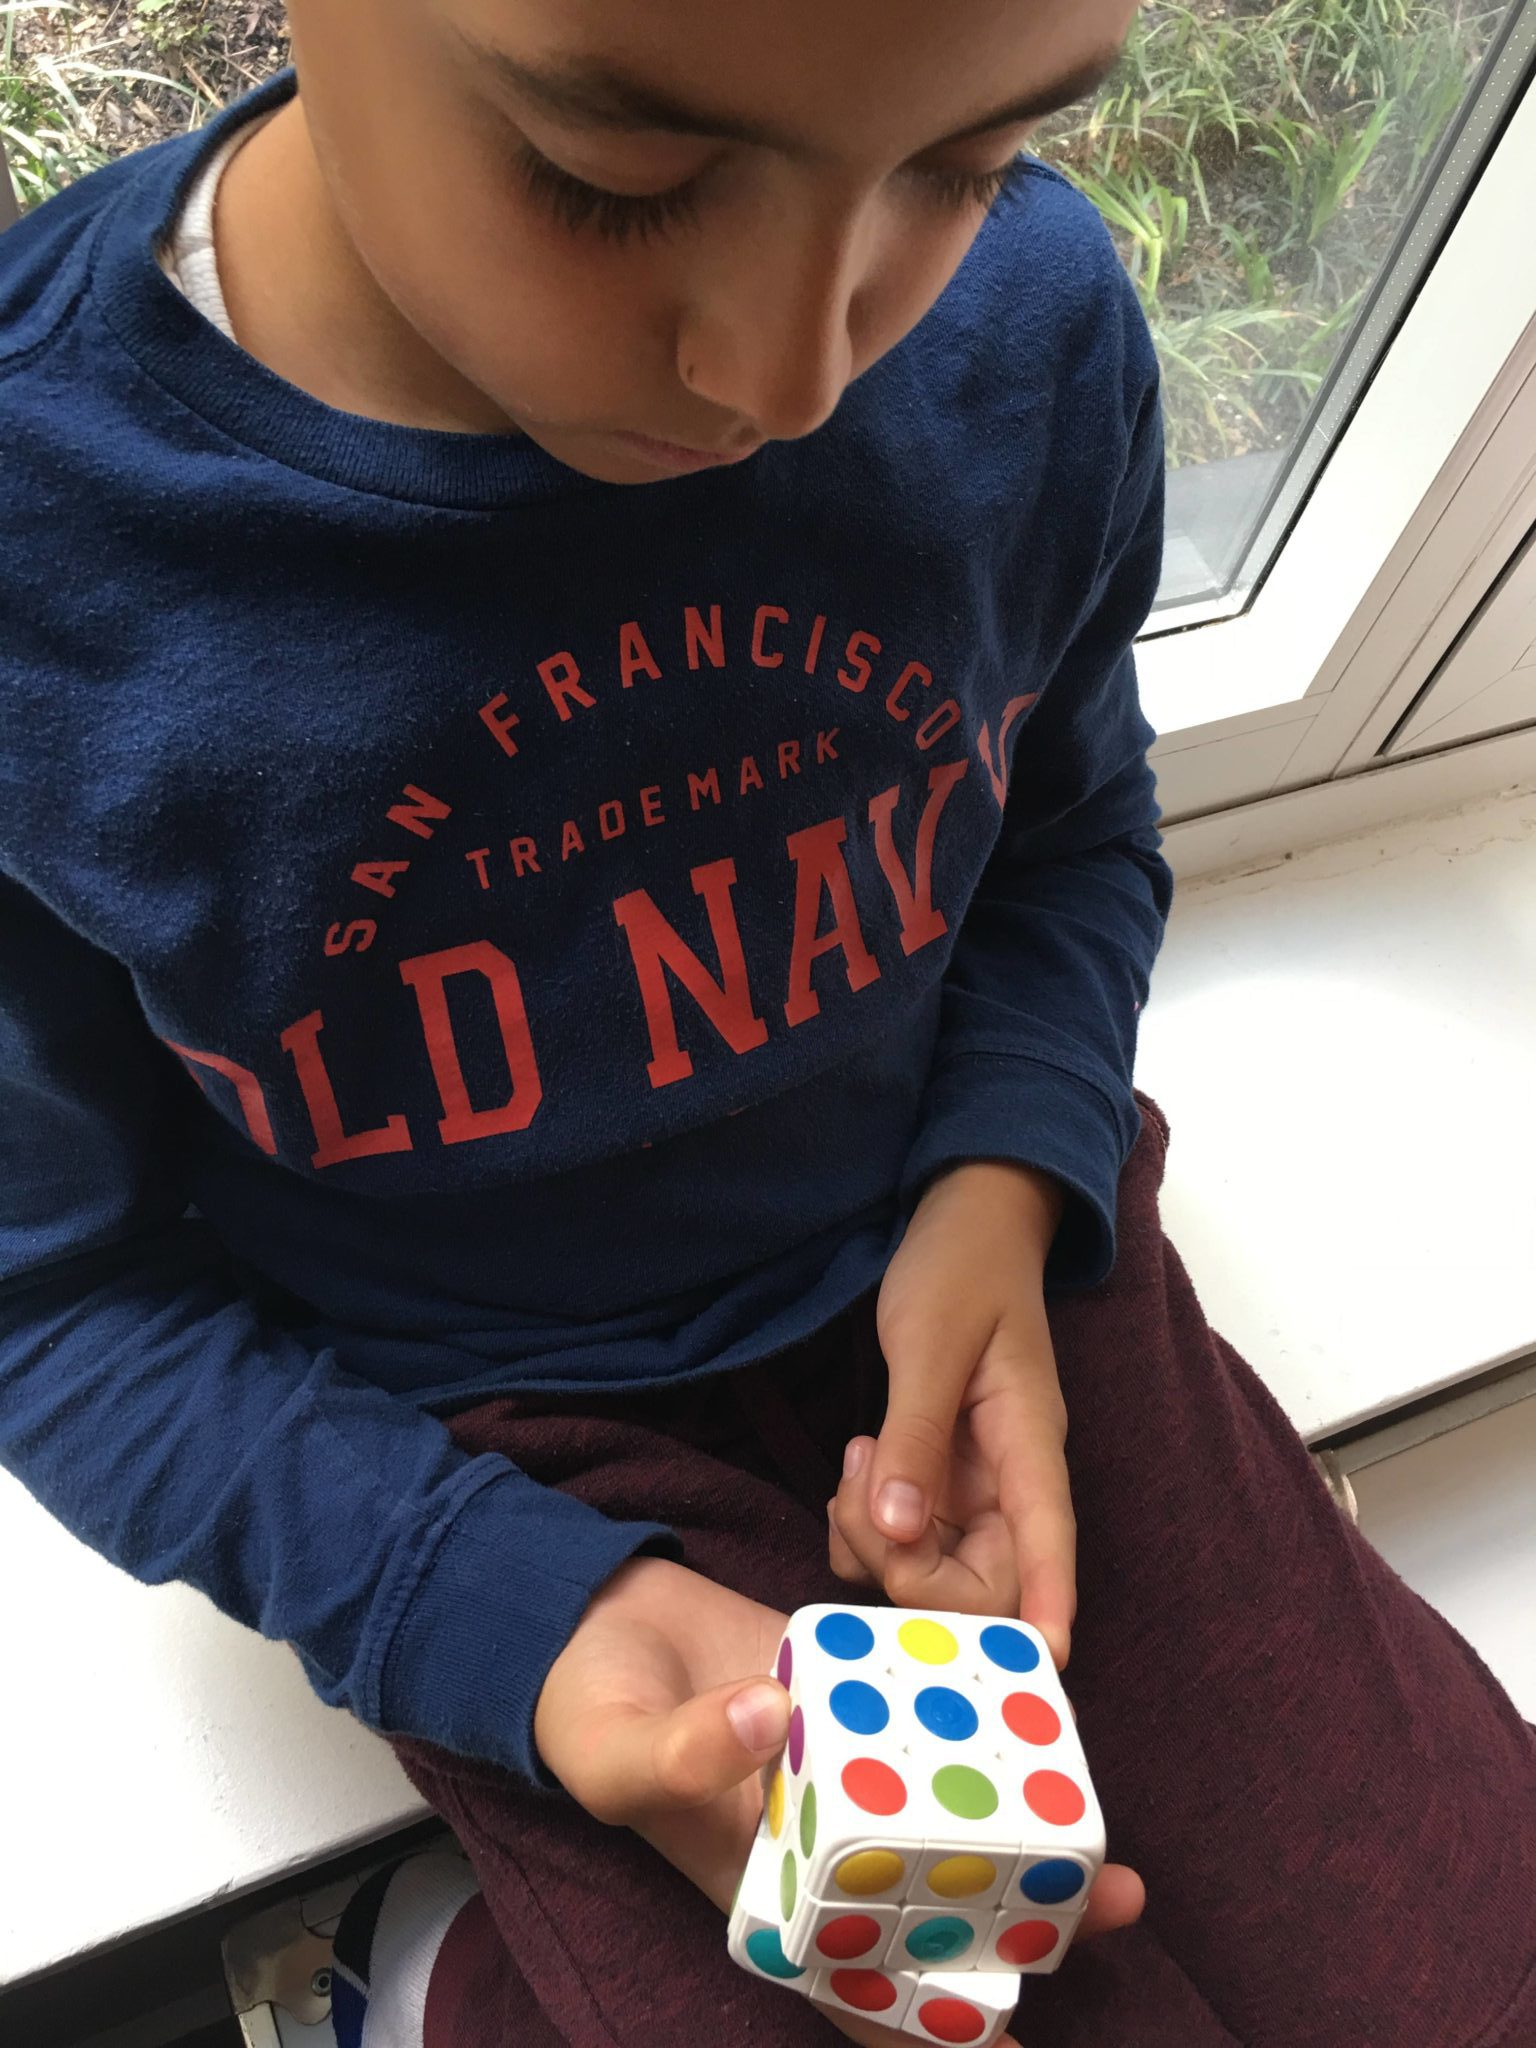 Ever been frustrated by the Rubik's Cube? Now you can enjoy solving the Rubik's Cube with Pai Technology's Cube-tastic! A reinvented 3D puzzle cube + AR app